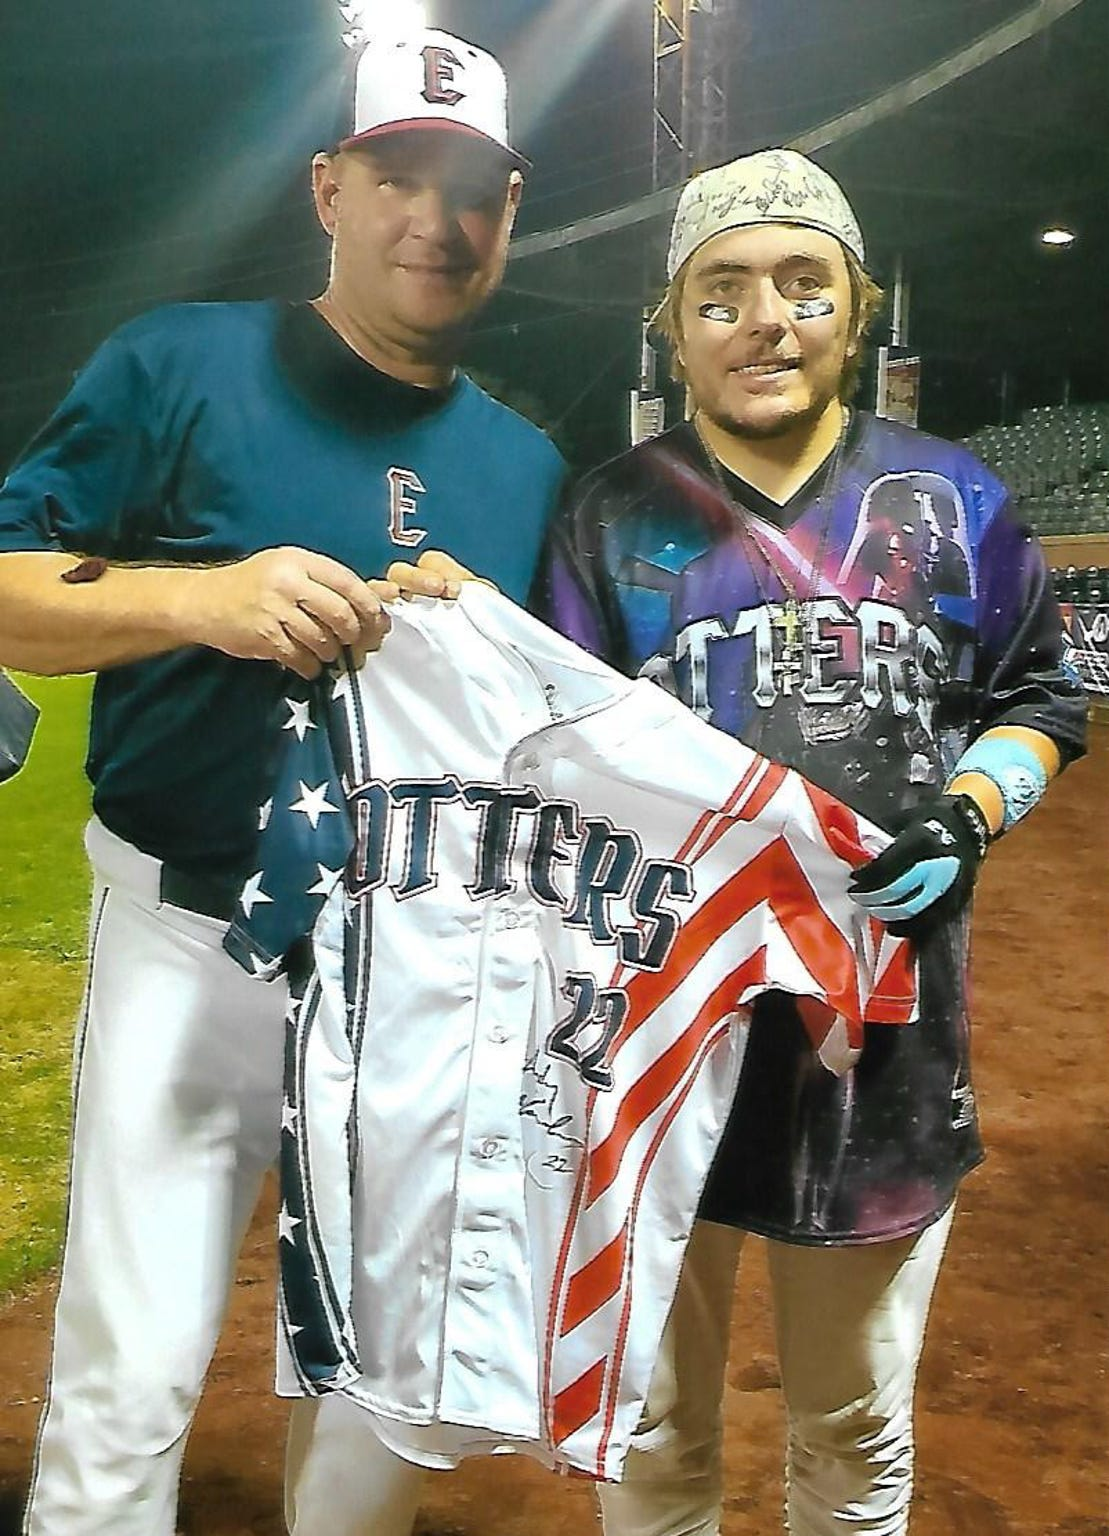 Evansville Otters' manager Andy McCauley (left) presents his game-worn jersey to superfan Nick Drake from Military Appreciation Night on Aug. 25.